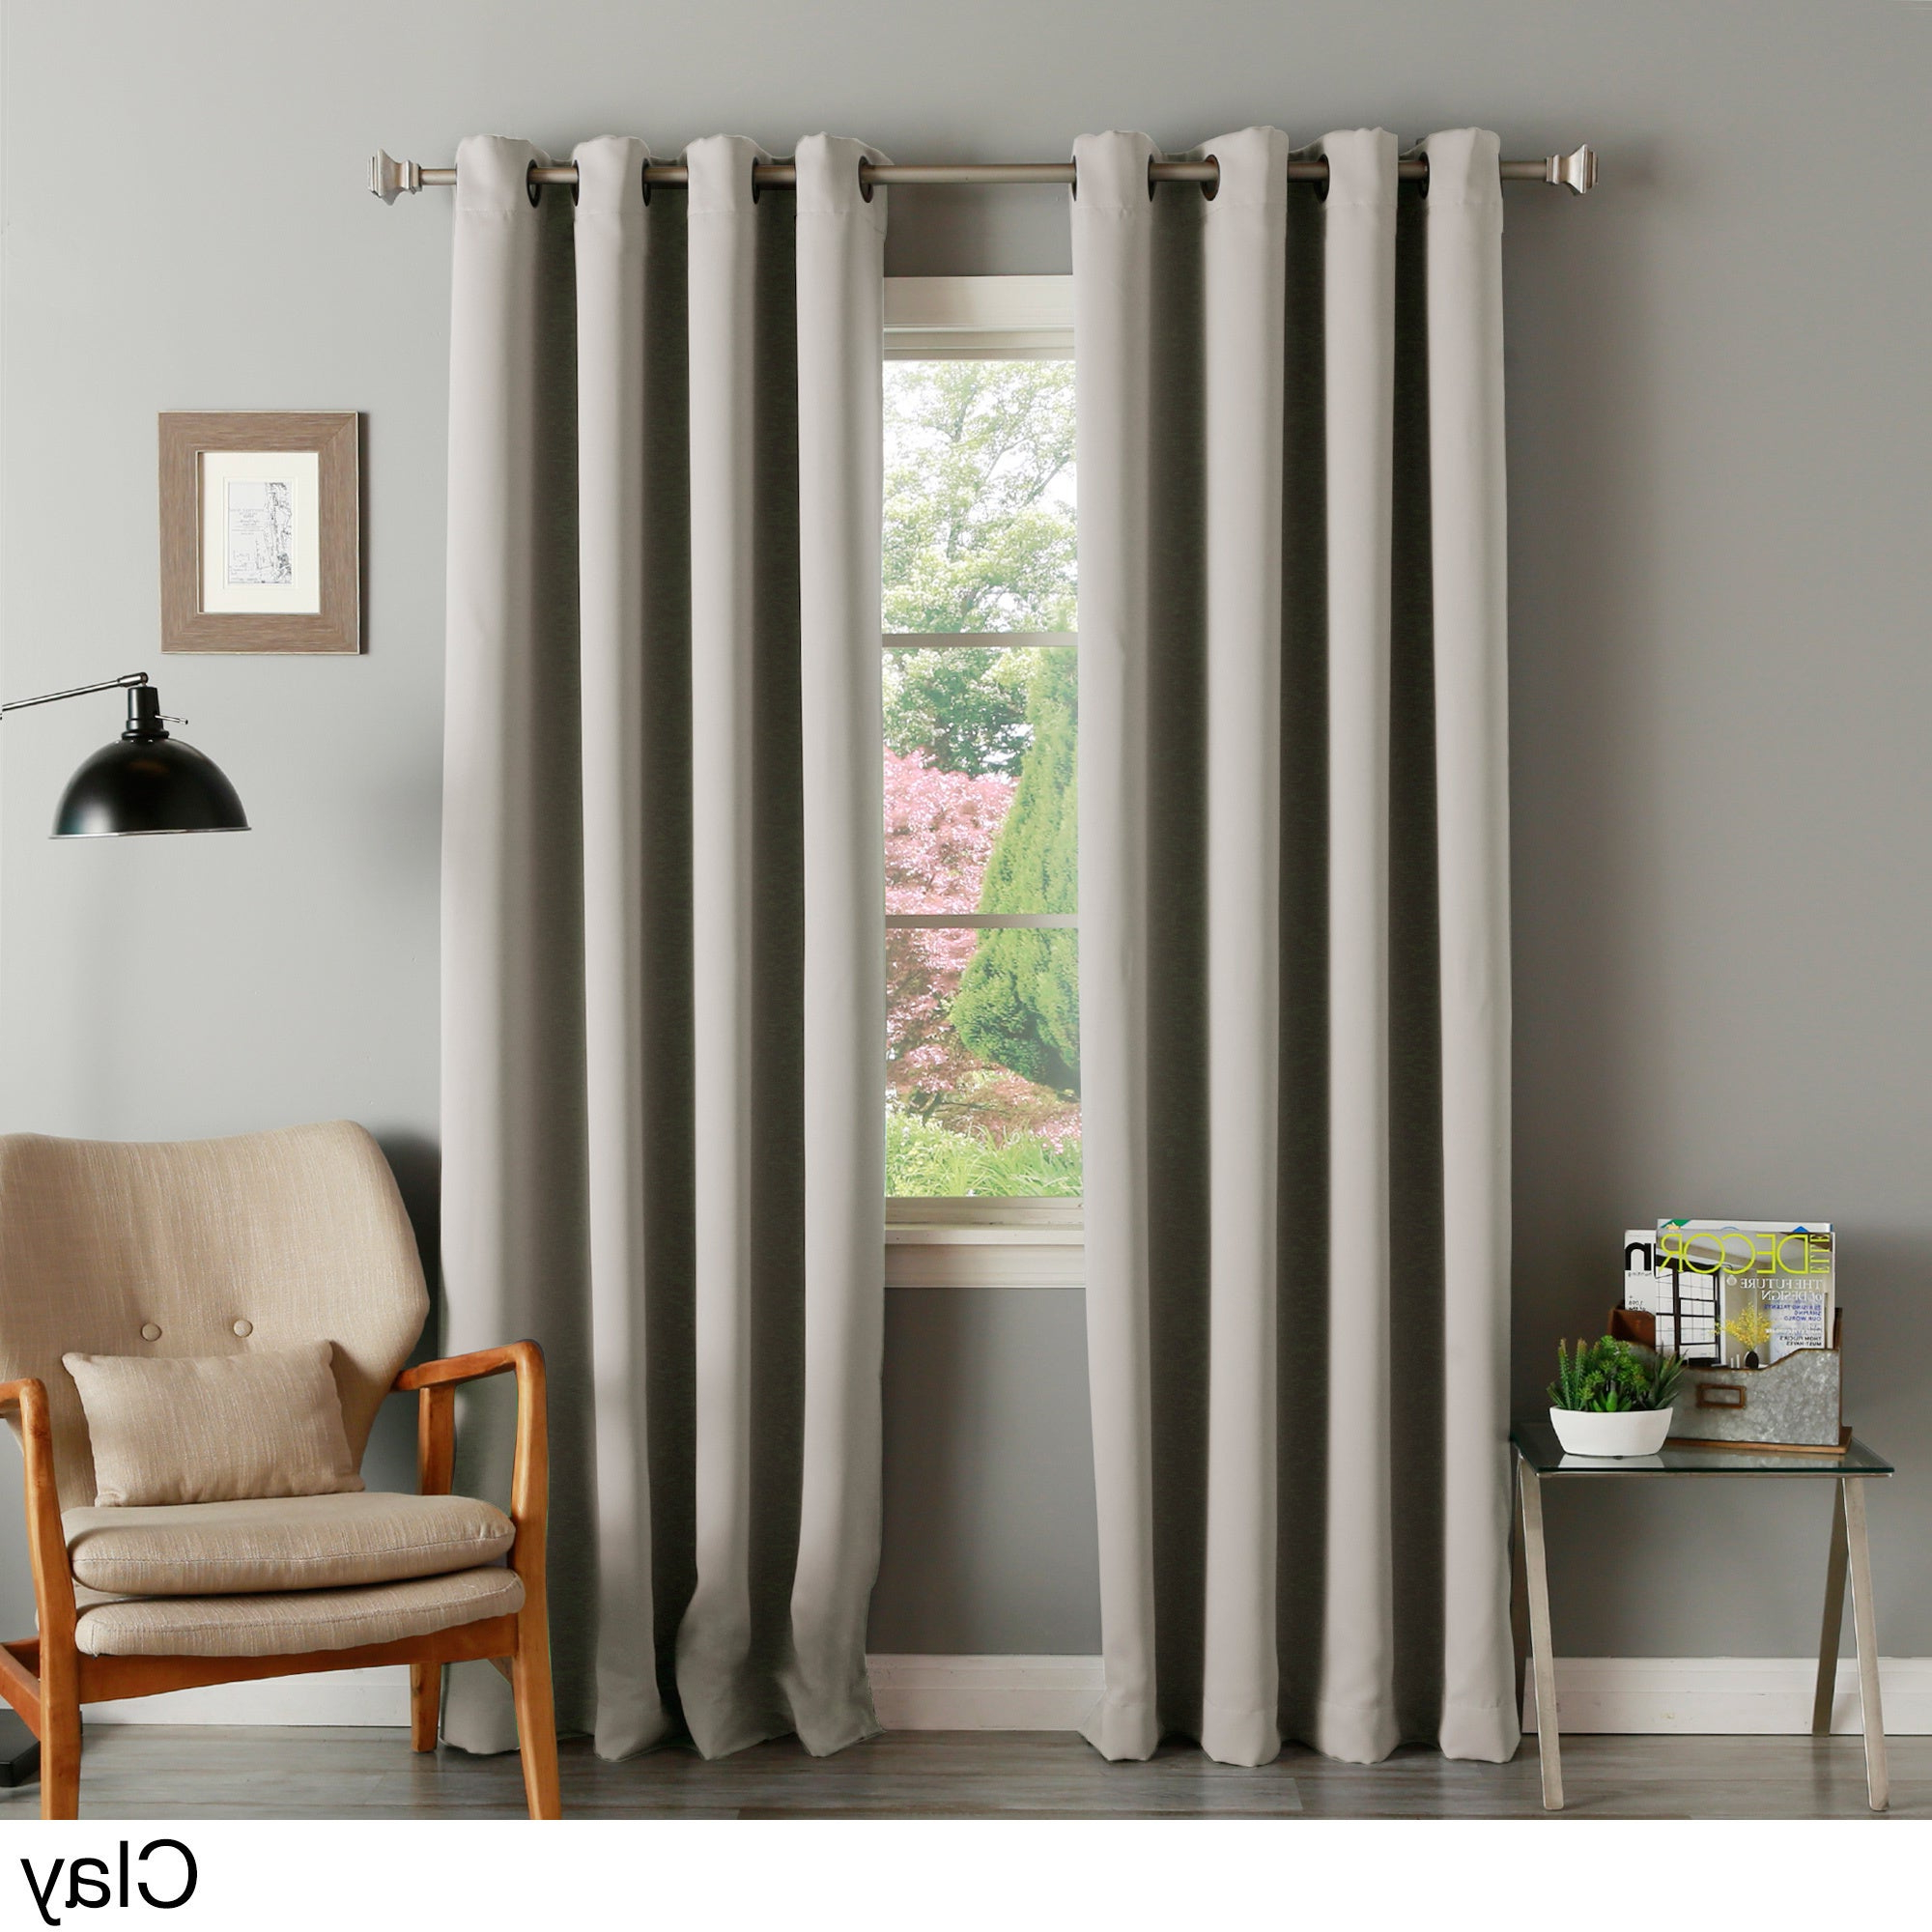 Latest Thermal Insulated Blackout Curtain Pairs With Aurora Home Thermal Insulated Blackout Grommet Top Curtain Panel Pair (View 2 of 20)